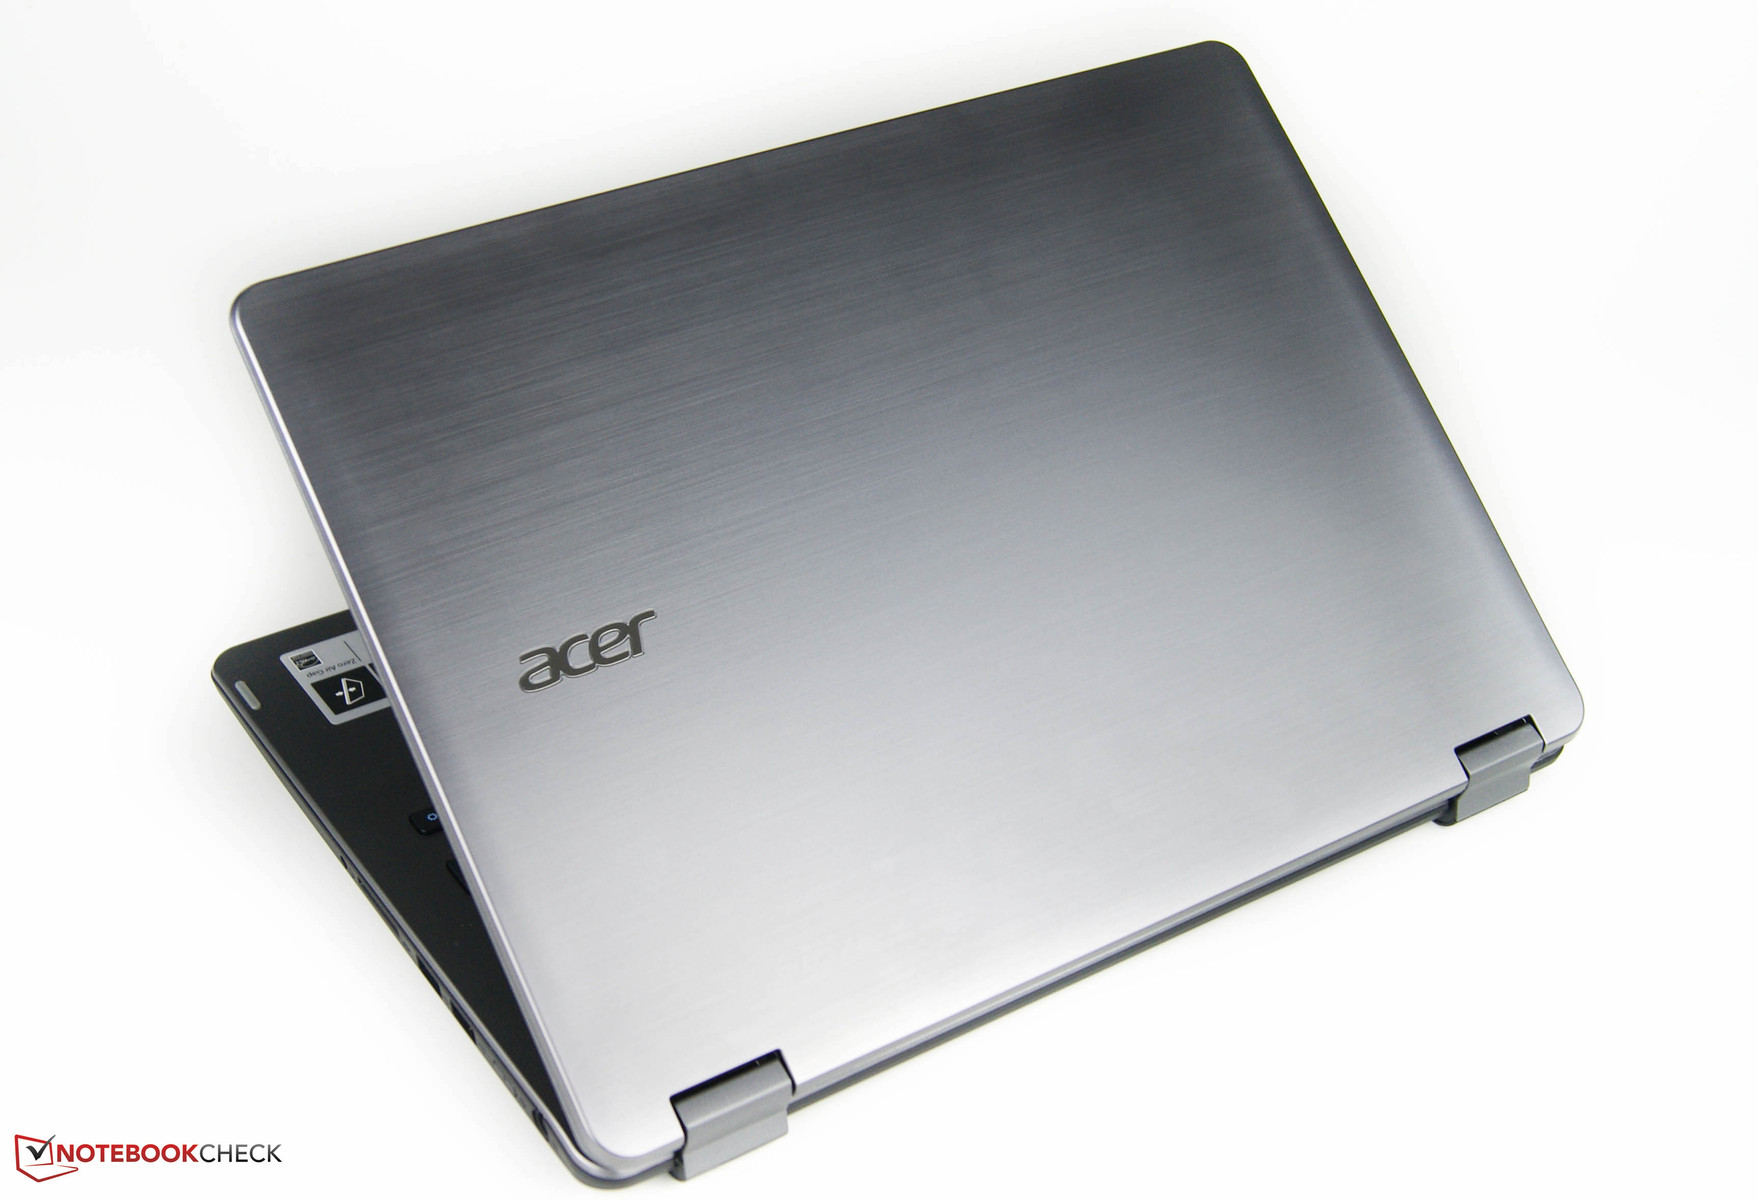 ACER EXTENSA 4210 NOTEBOOK ATHEROS WLAN DRIVER DOWNLOAD FREE